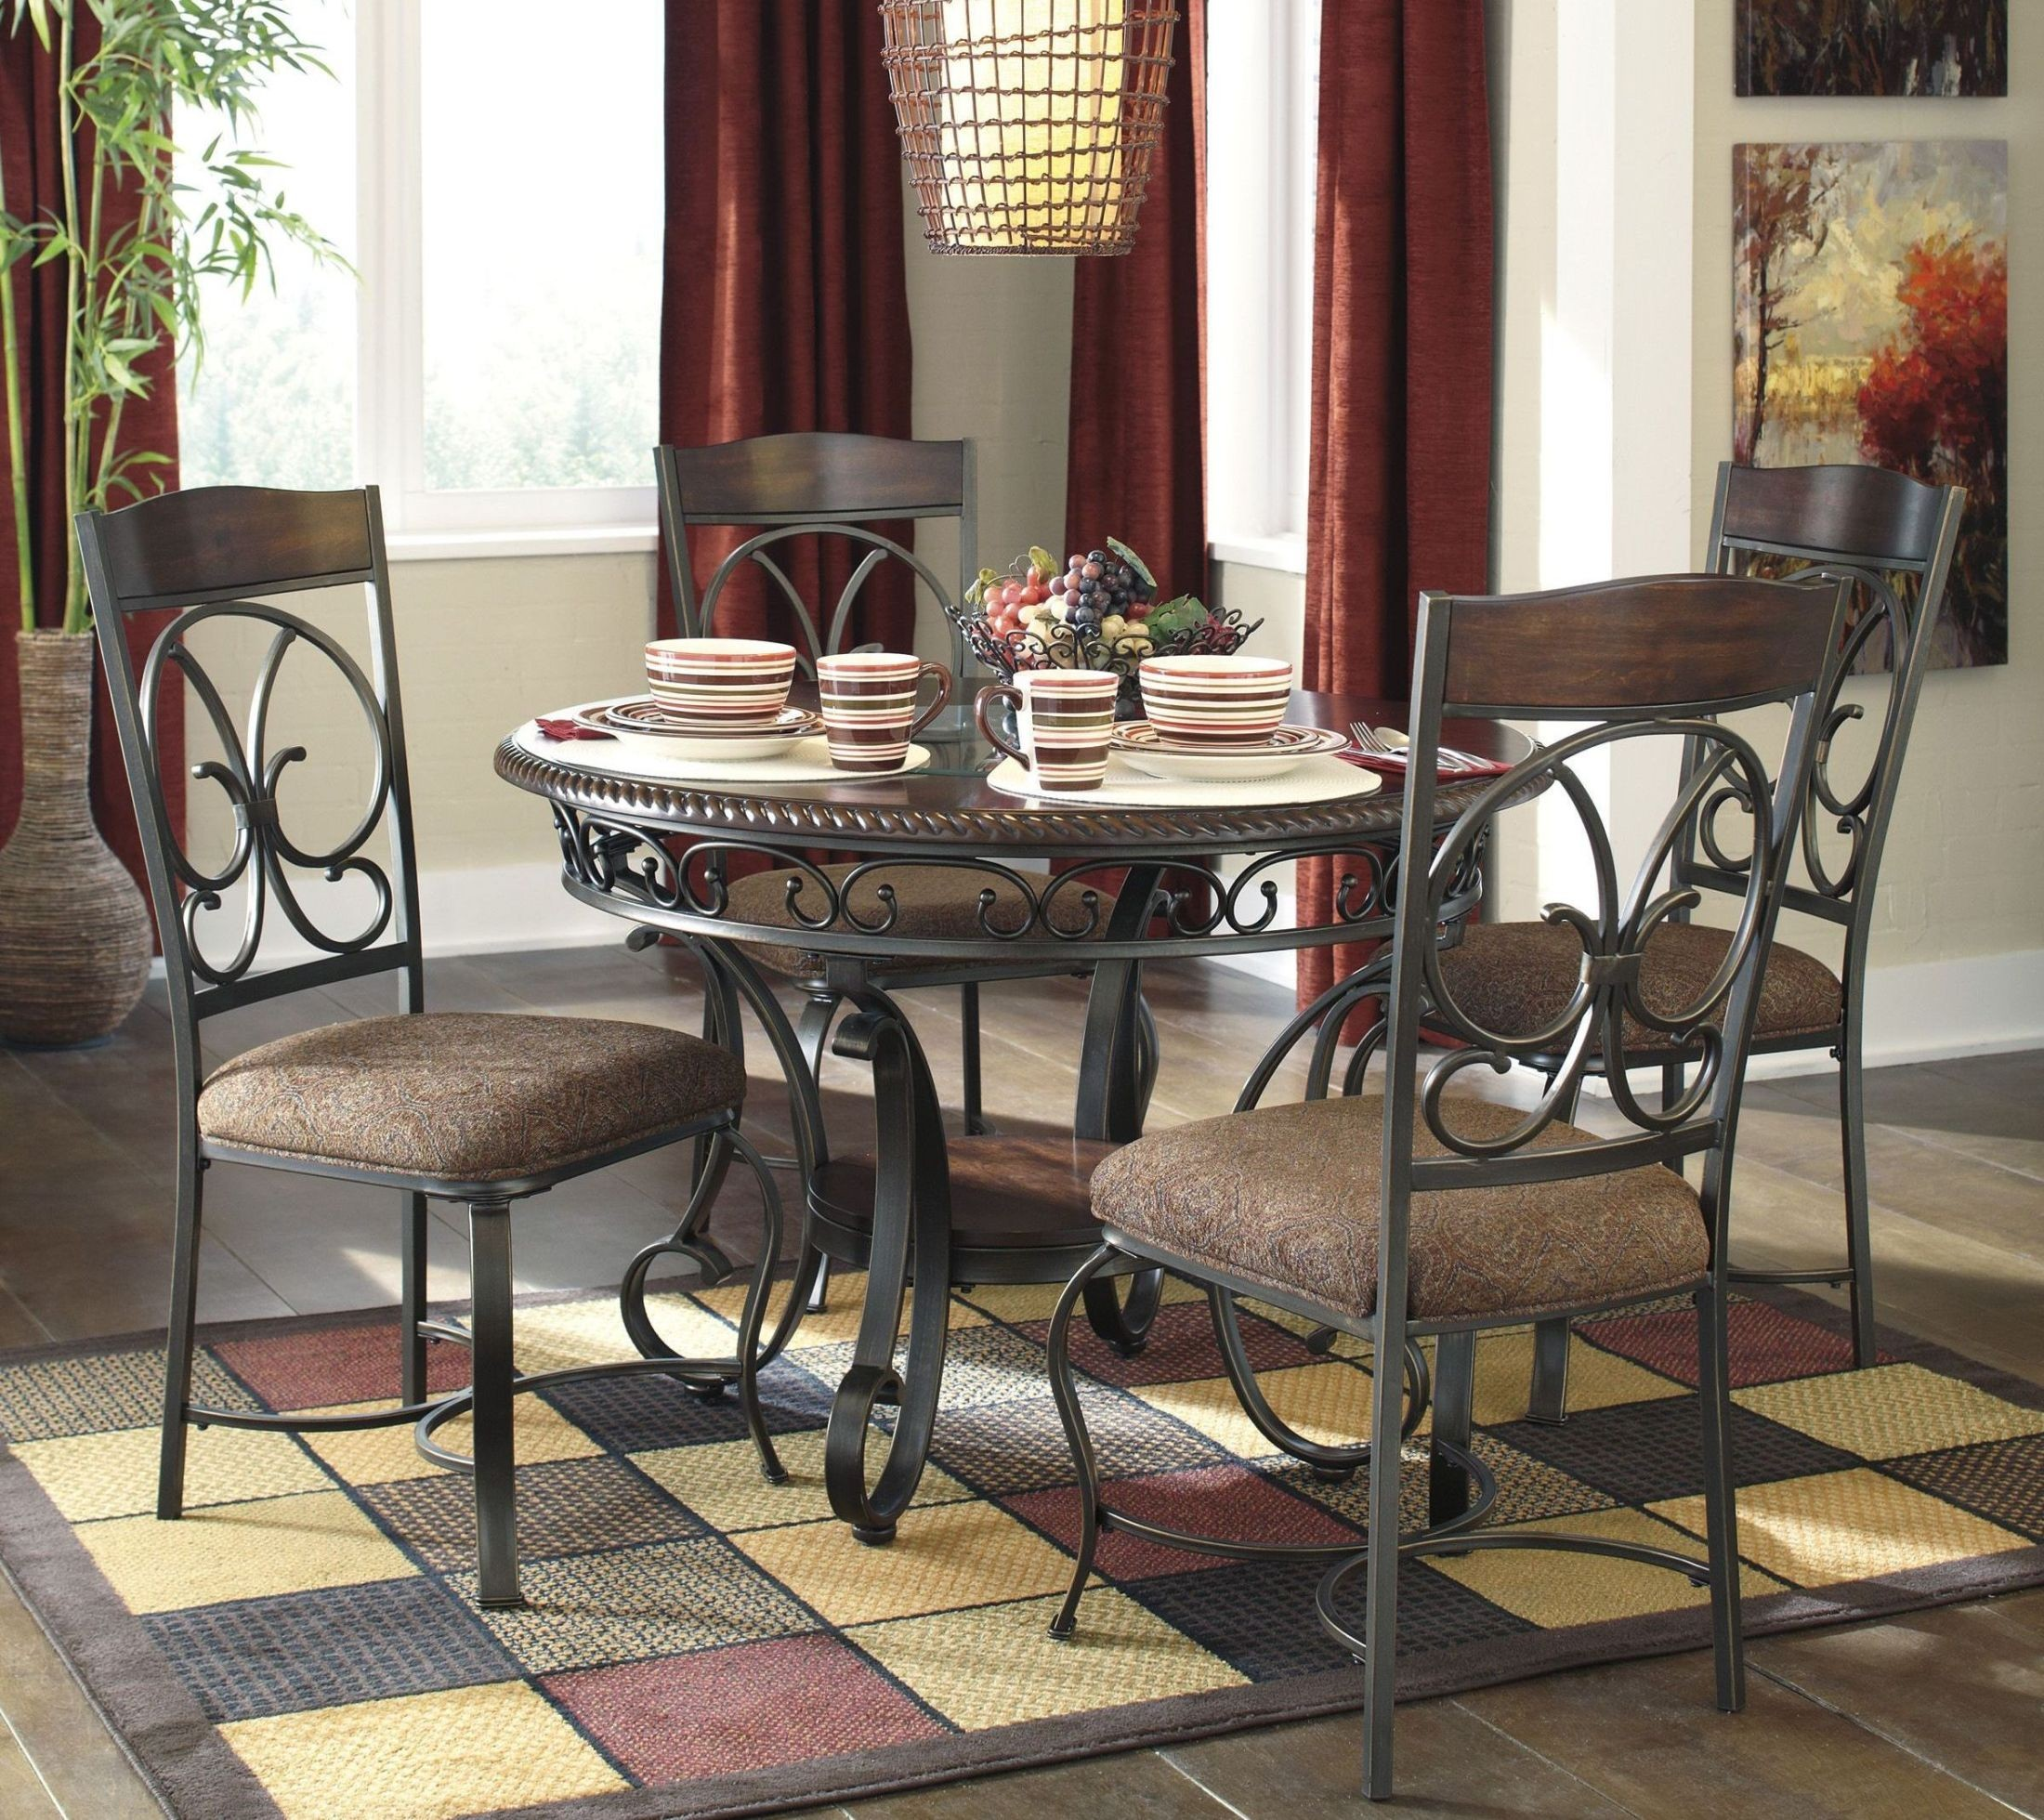 Dining Room Sets: Glambrey Round Dining Room Set From Ashley (D329-15